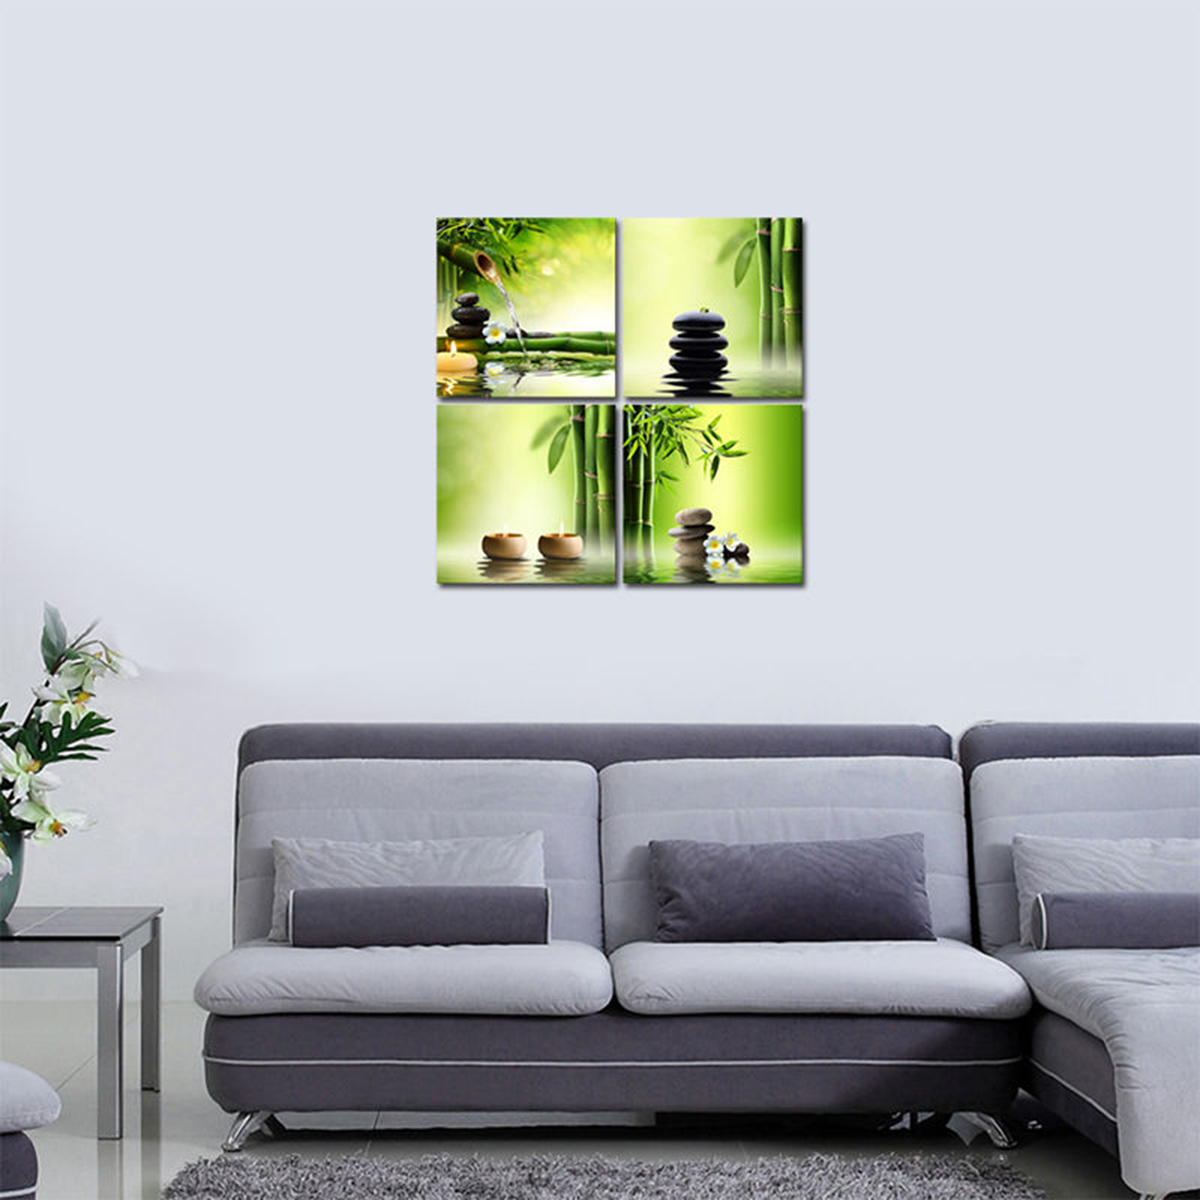 Kilimall canvas print pic painting home decor wall art for Bamboo decorations home decor